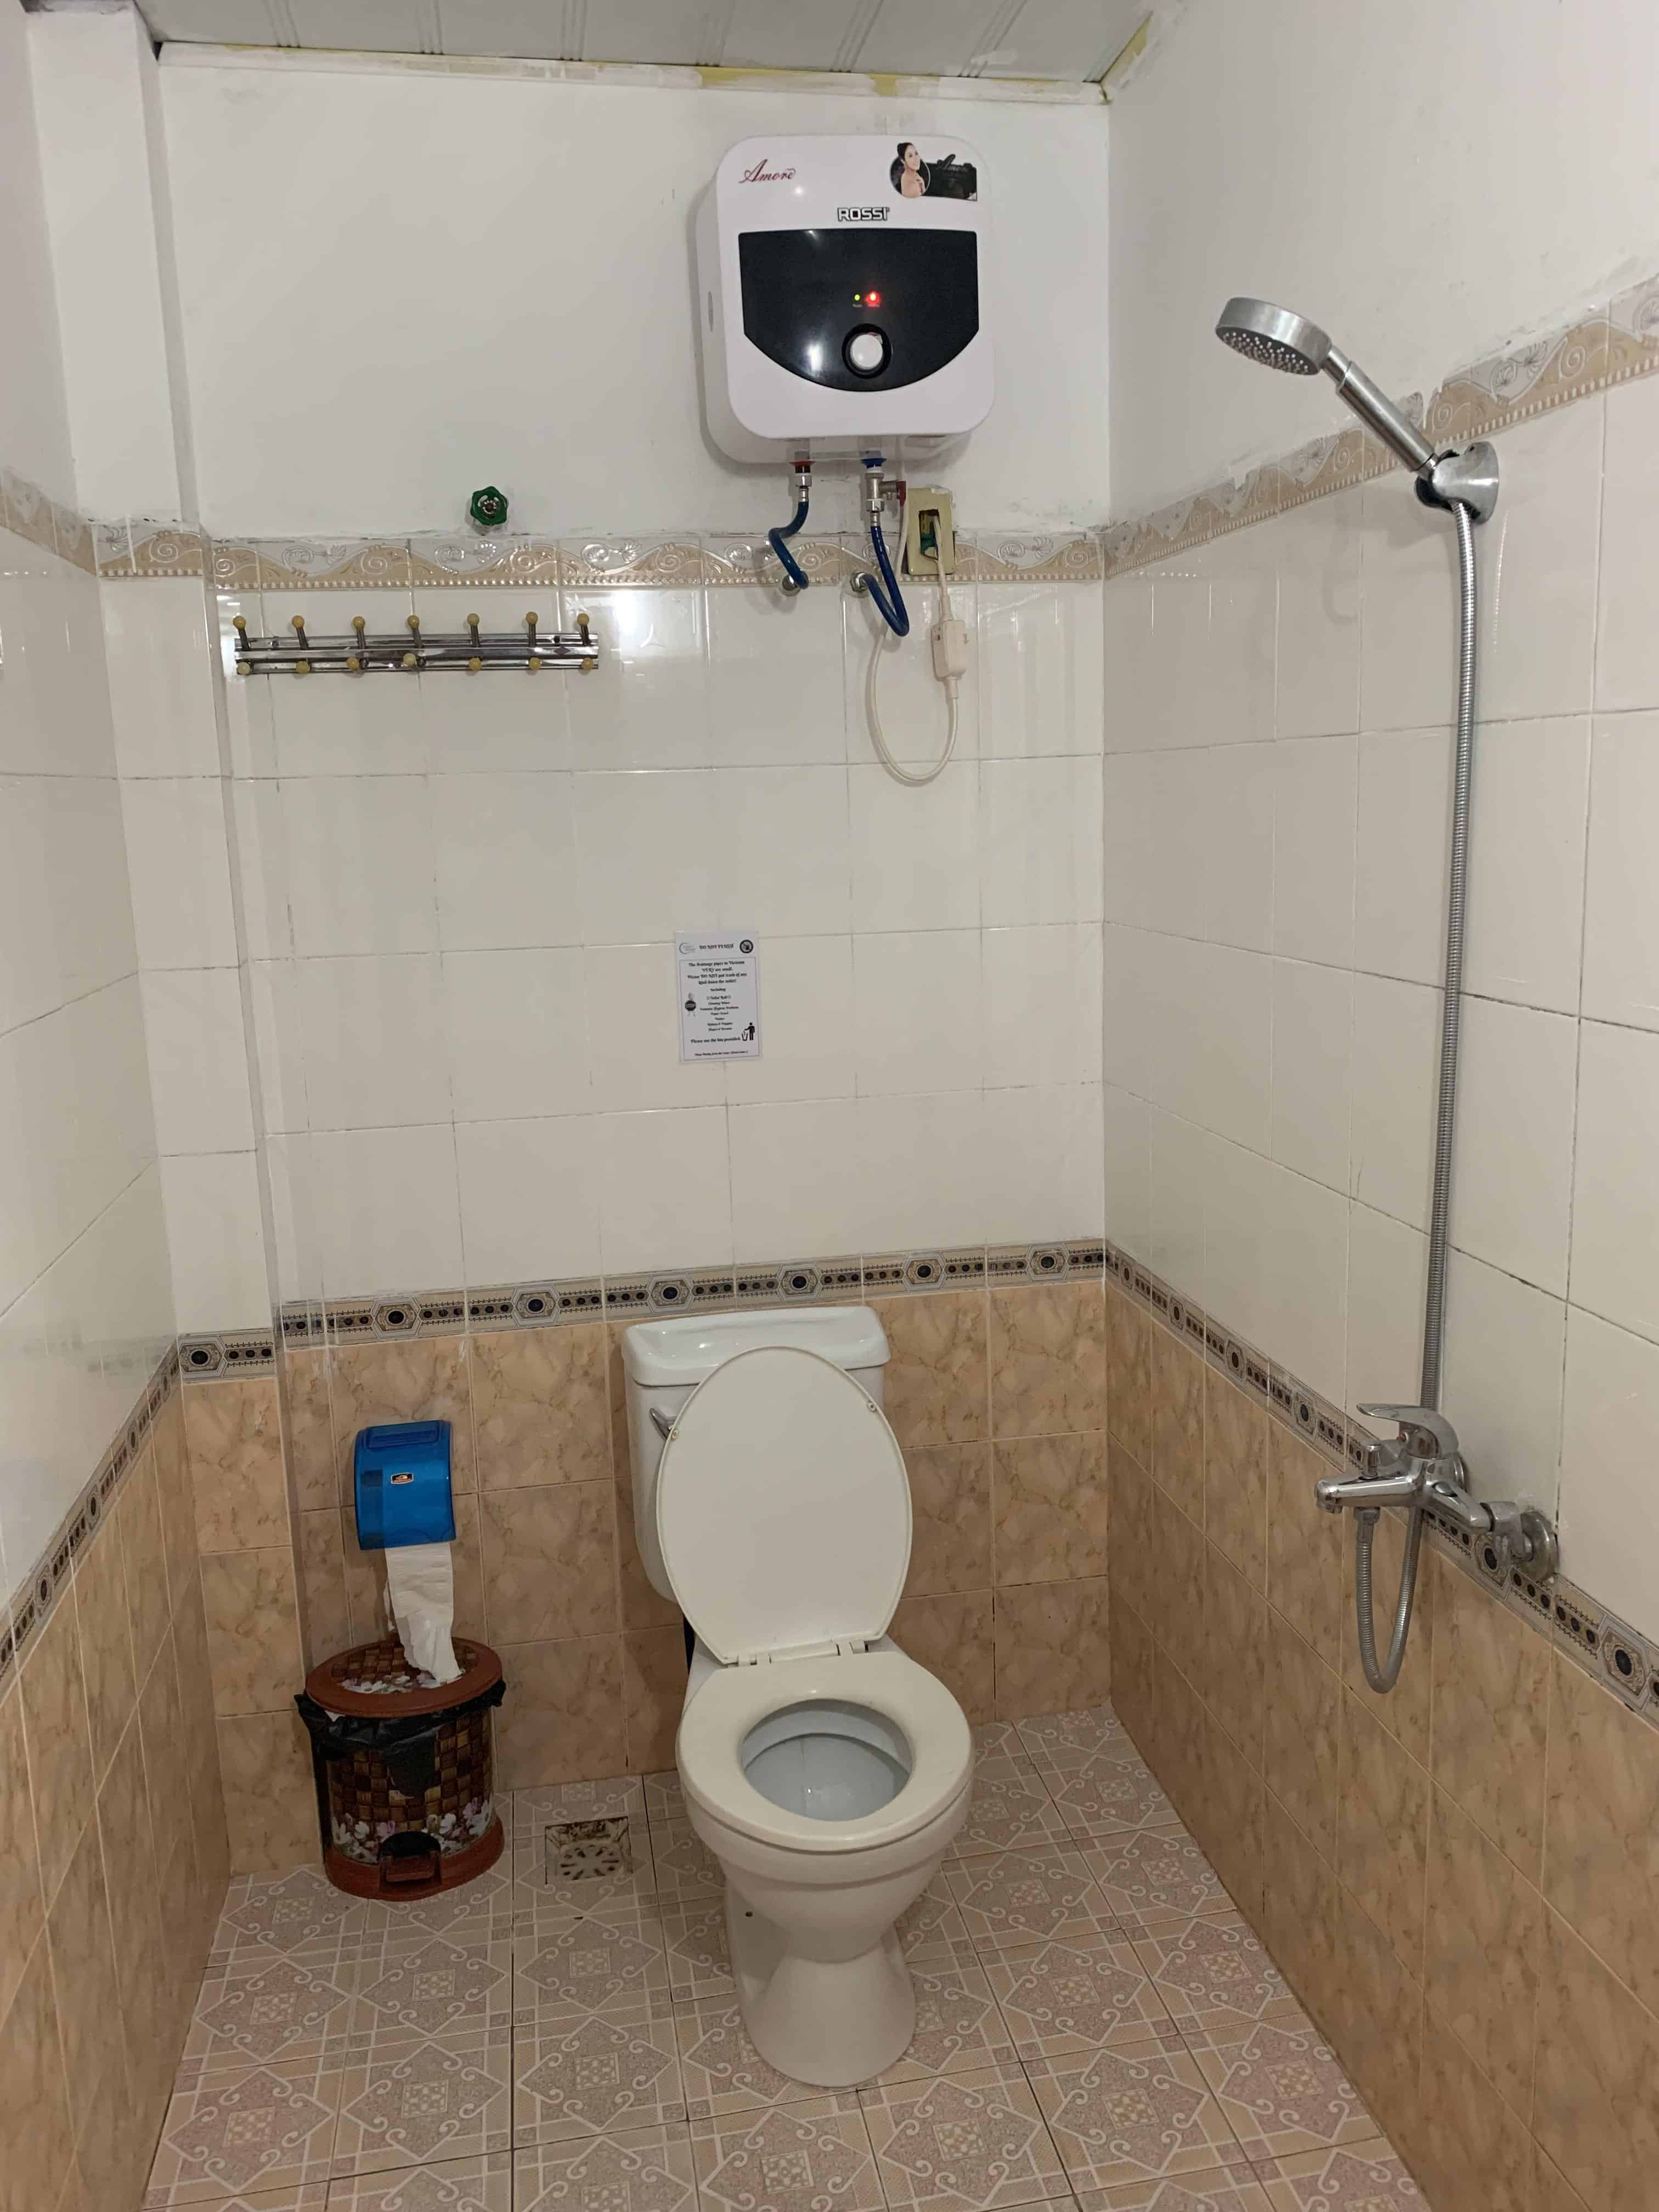 No divider between shower and toilet